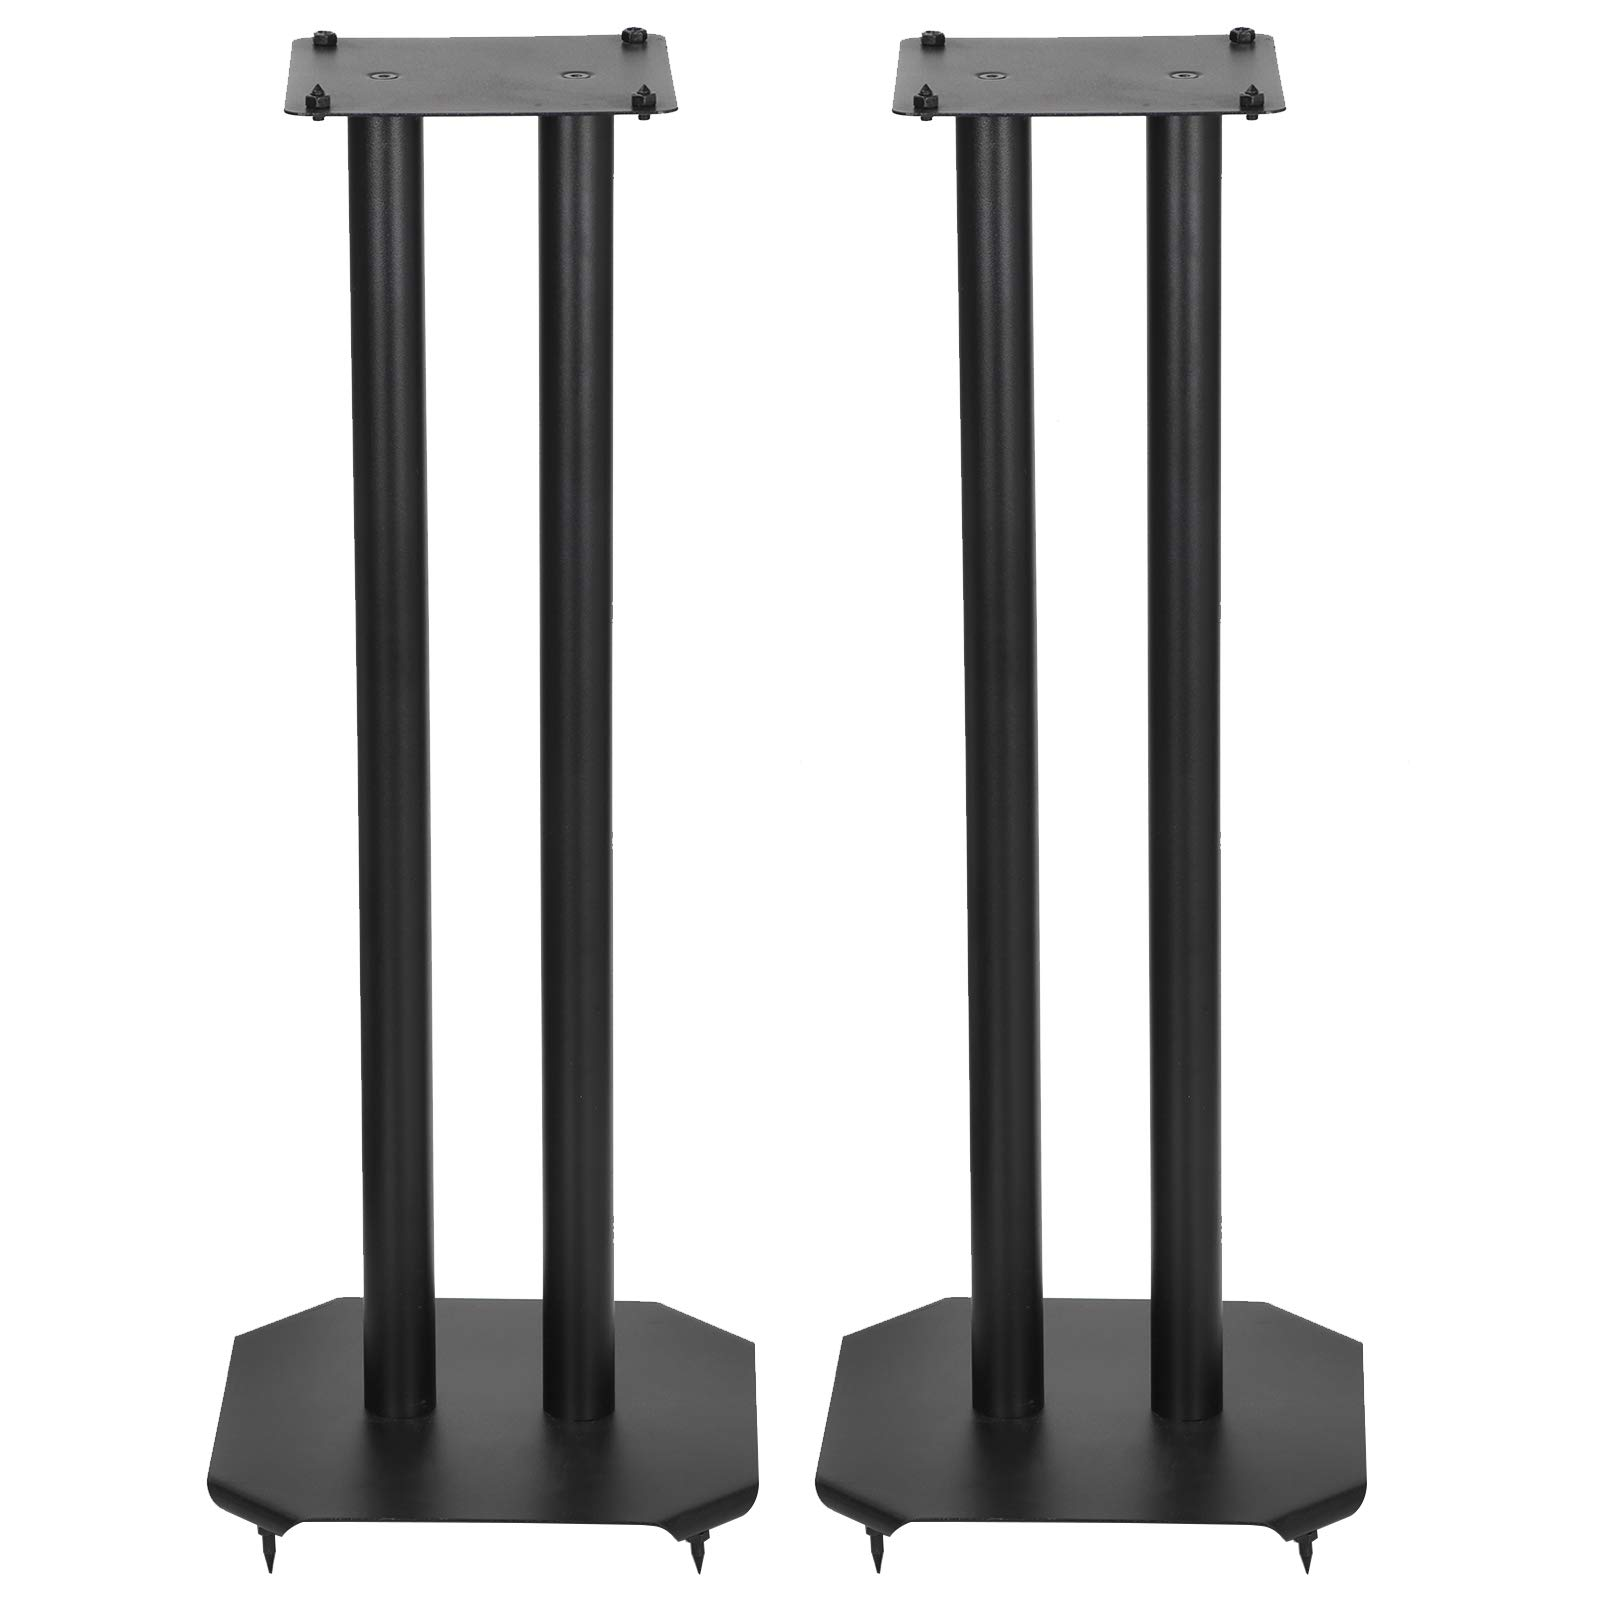 ZENY Set of 2 Heavy Duty Premium Universal Floor Speaker Stands for Surround Sound & Book Shelf Speakers Up to 22 lbs by ZENY